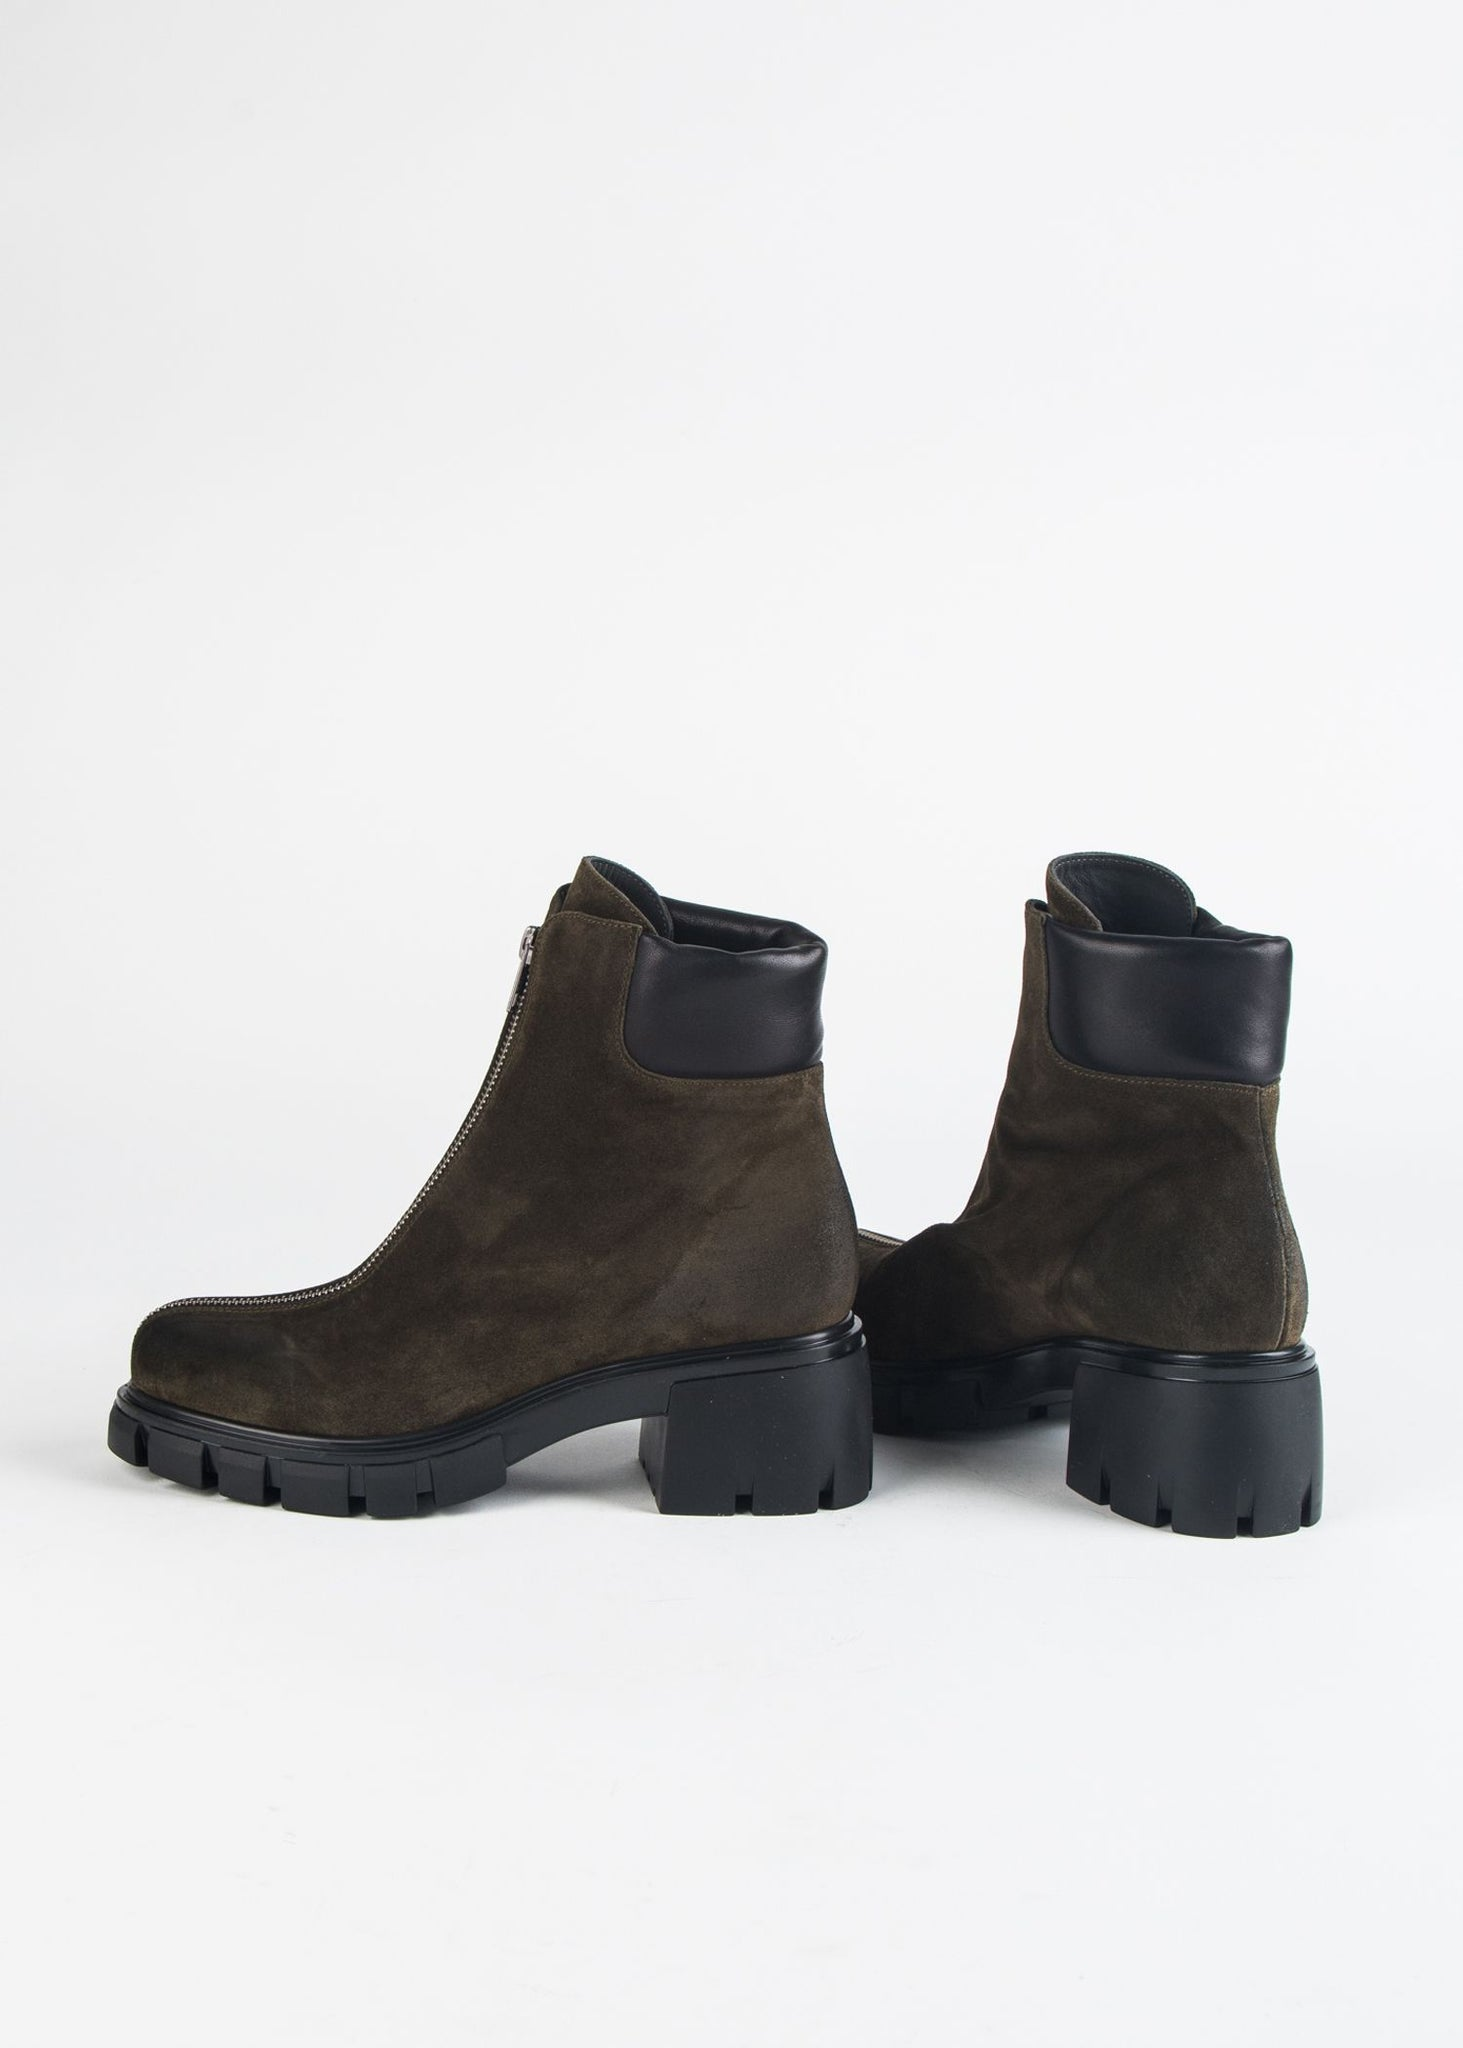 CENTER ZIP LUG SOLE BOOT